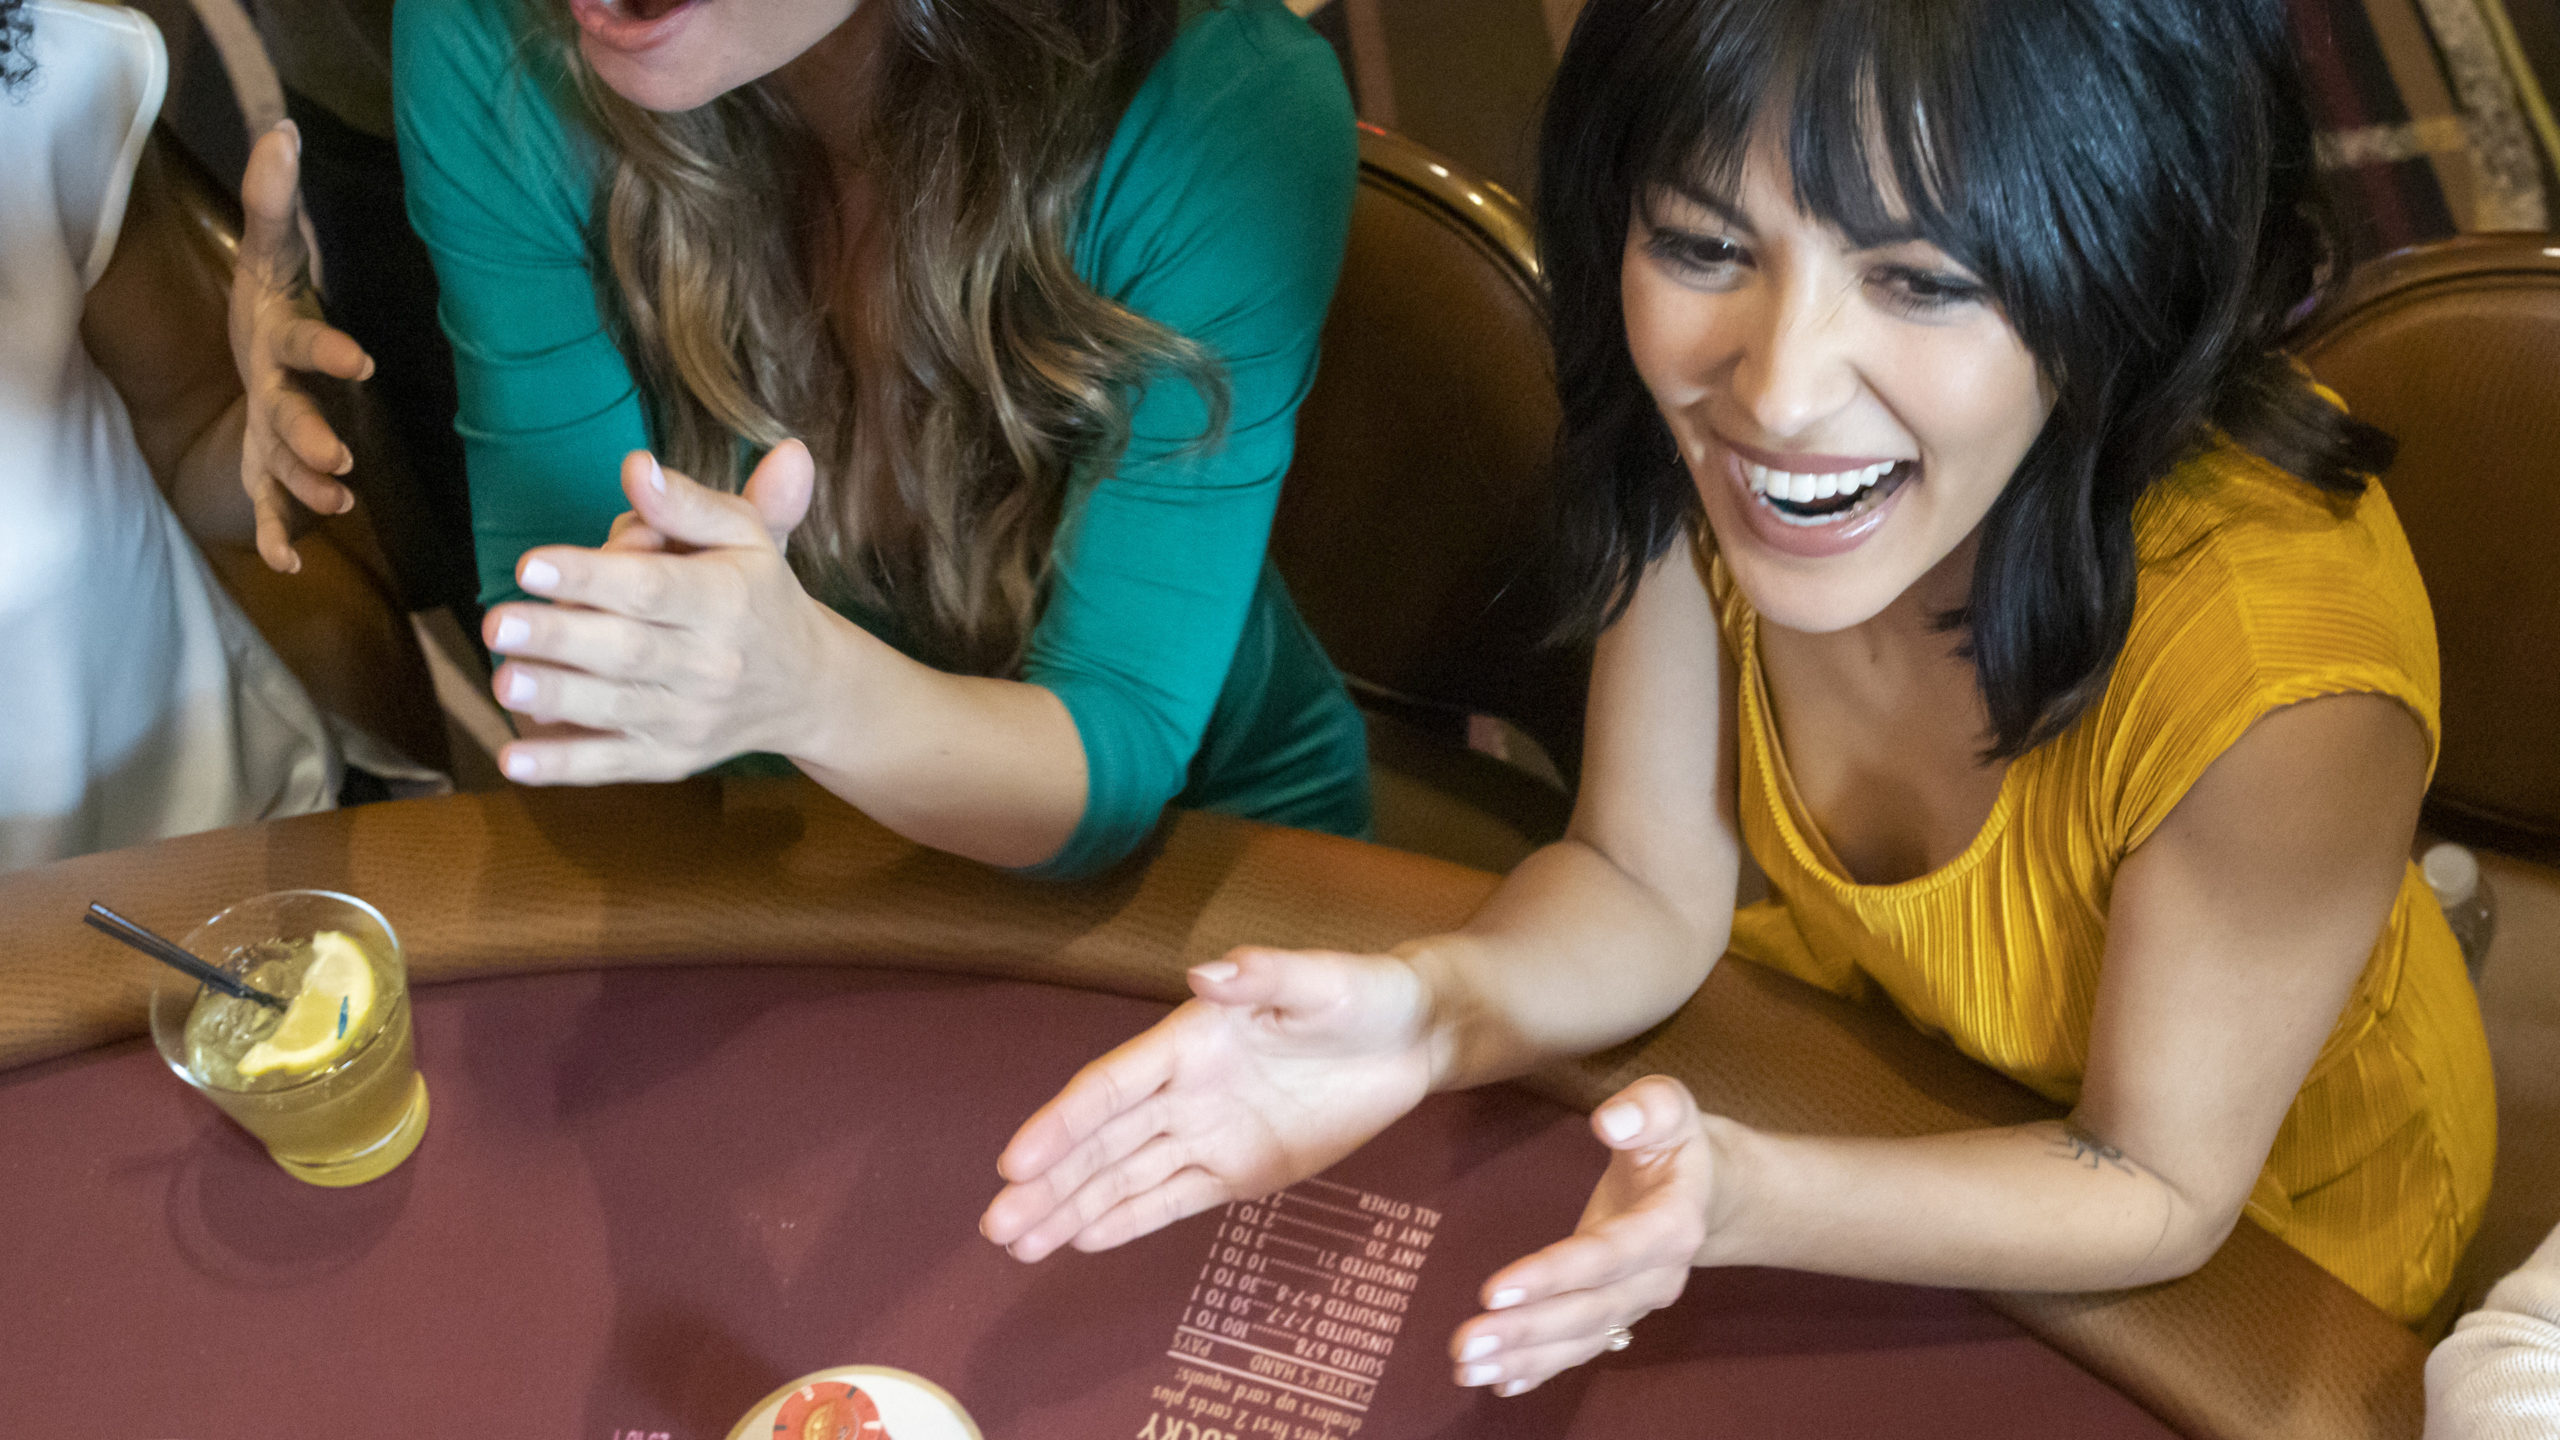 Woman sitting clapping at Pai Gow Poker table